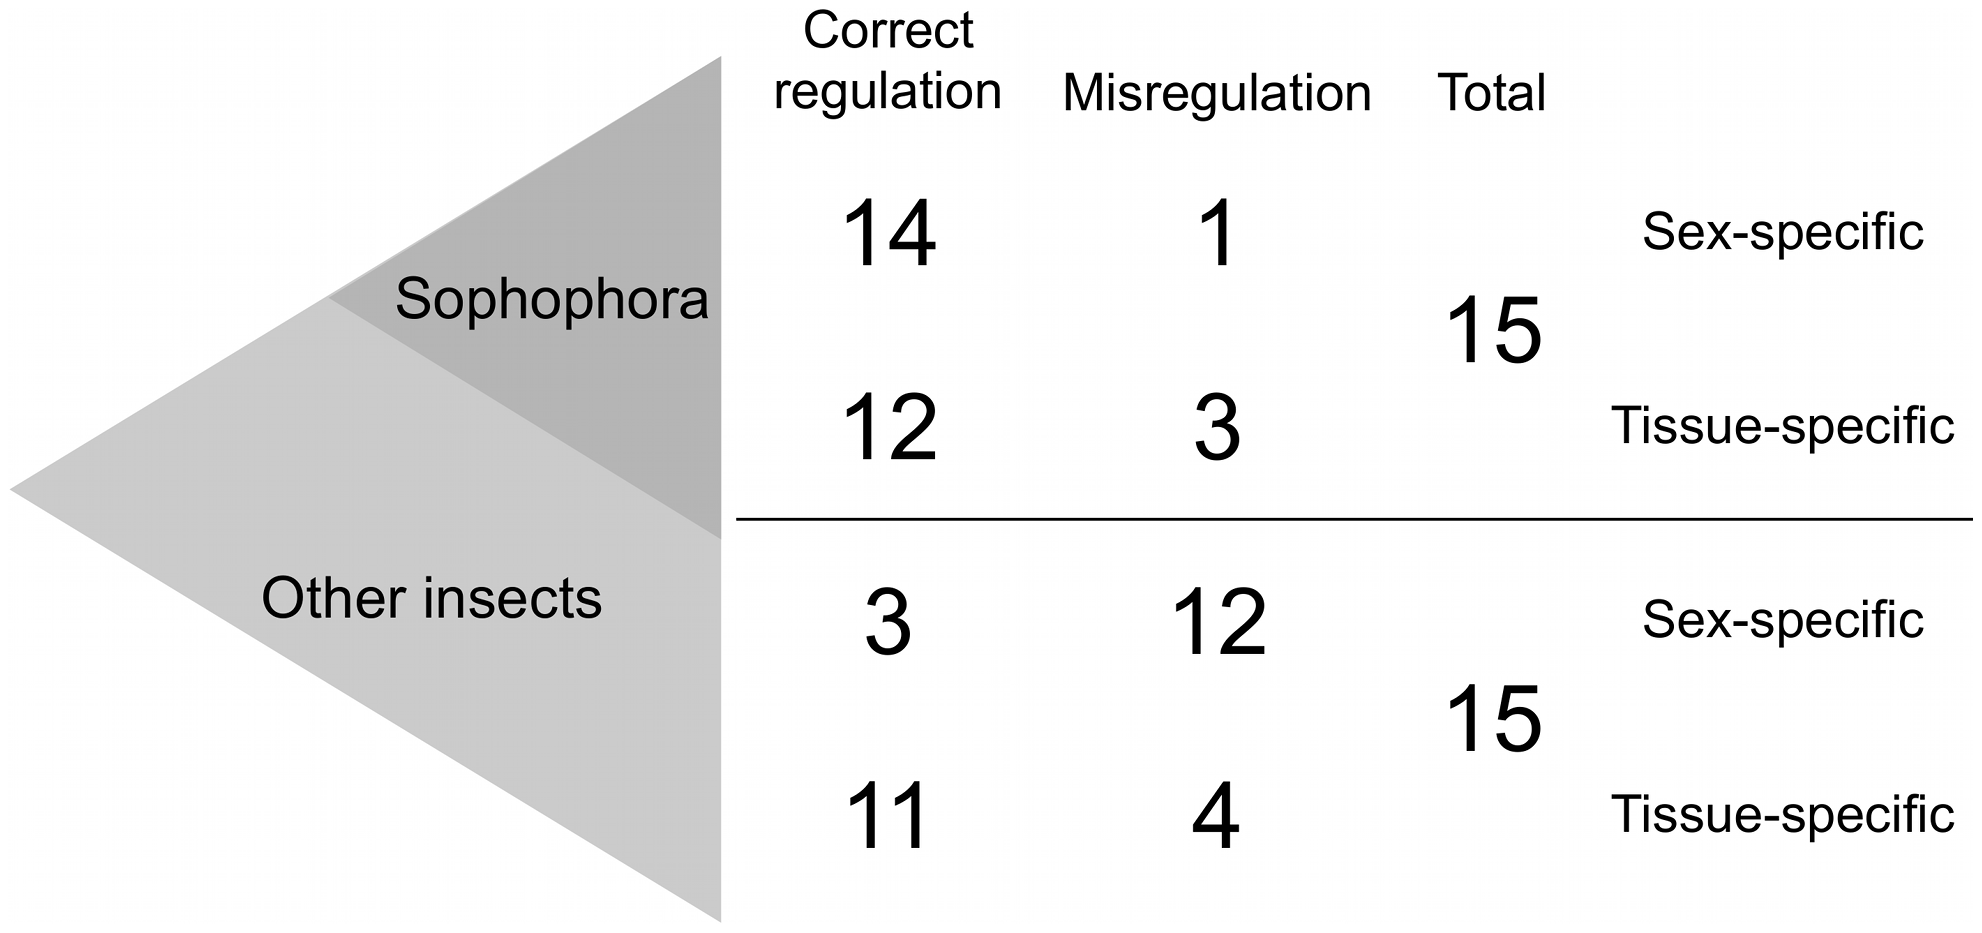 Sex-specific expression evolves faster than tissue-specific expression.